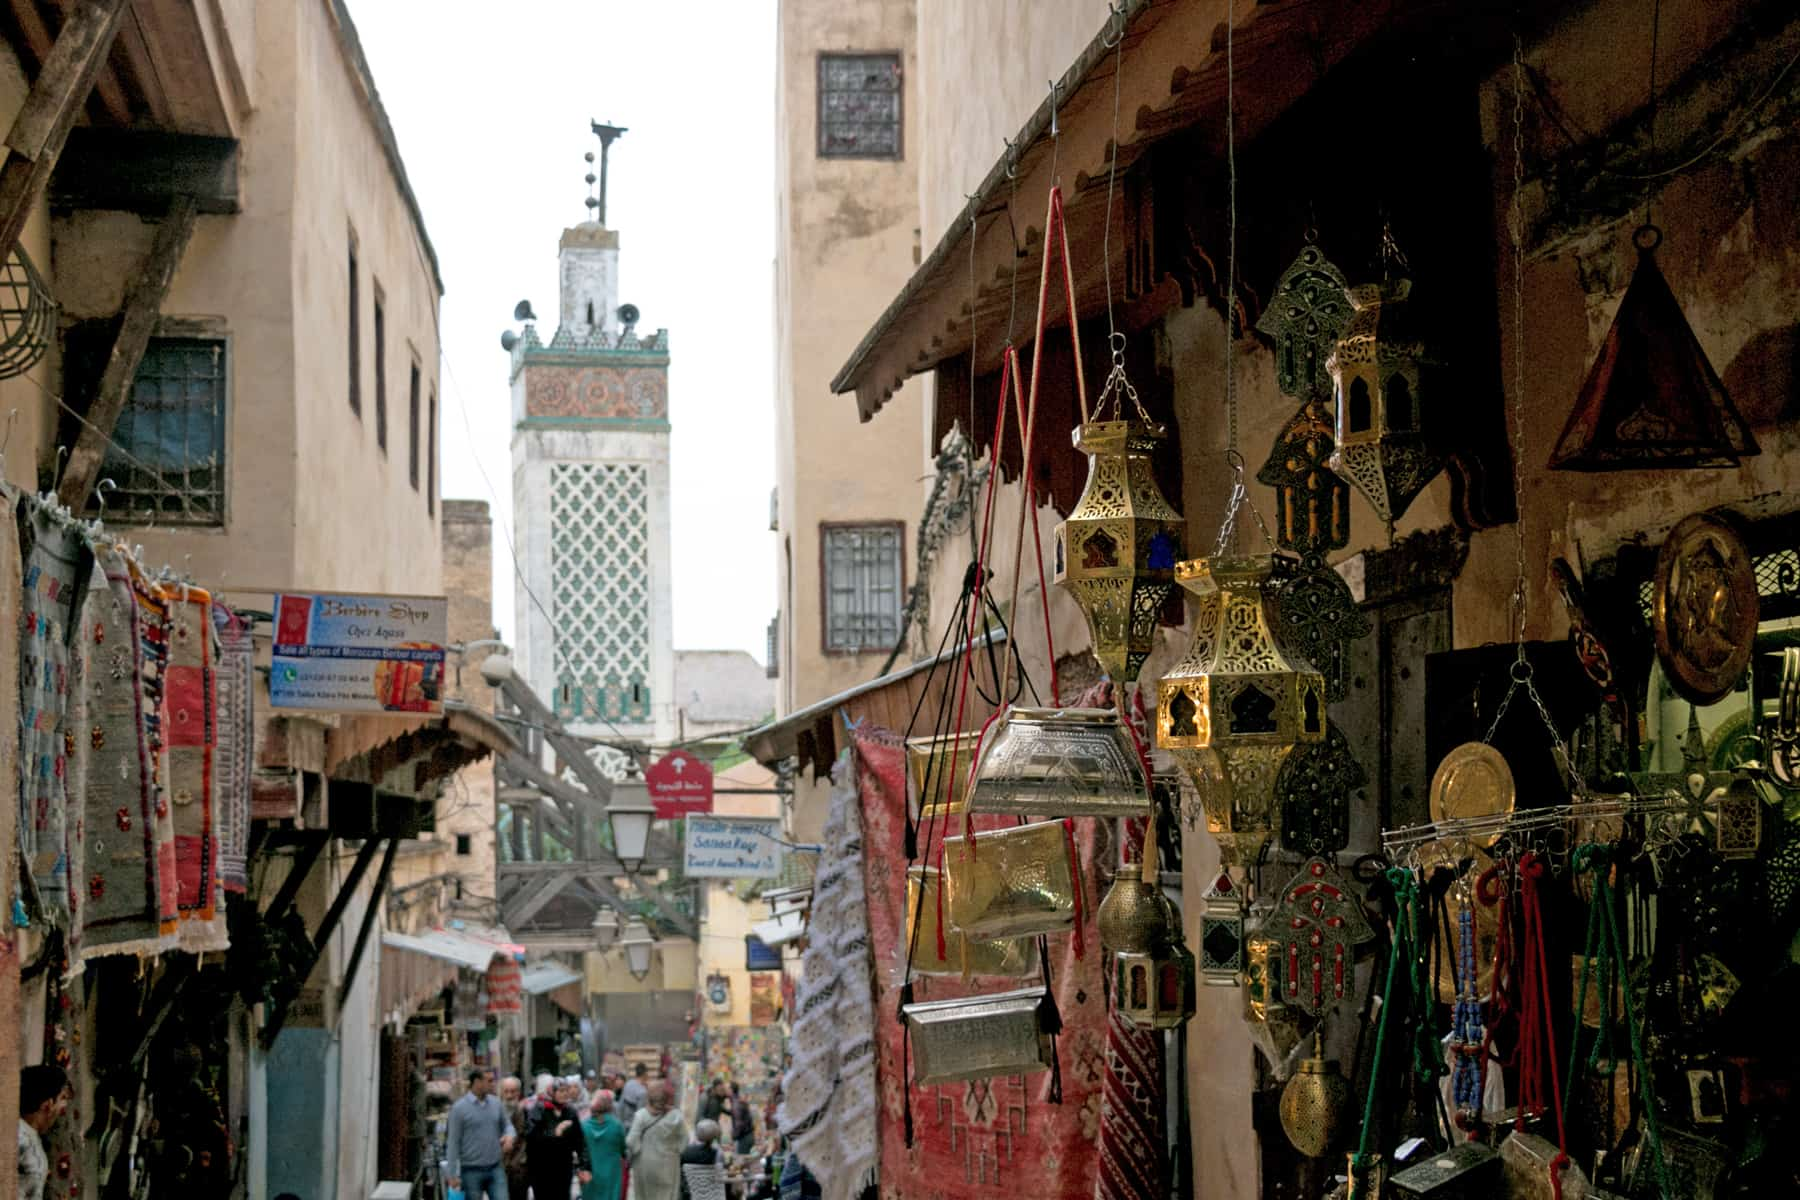 A busy street in Fes Morocco, with the minaret of a Mosque in the background